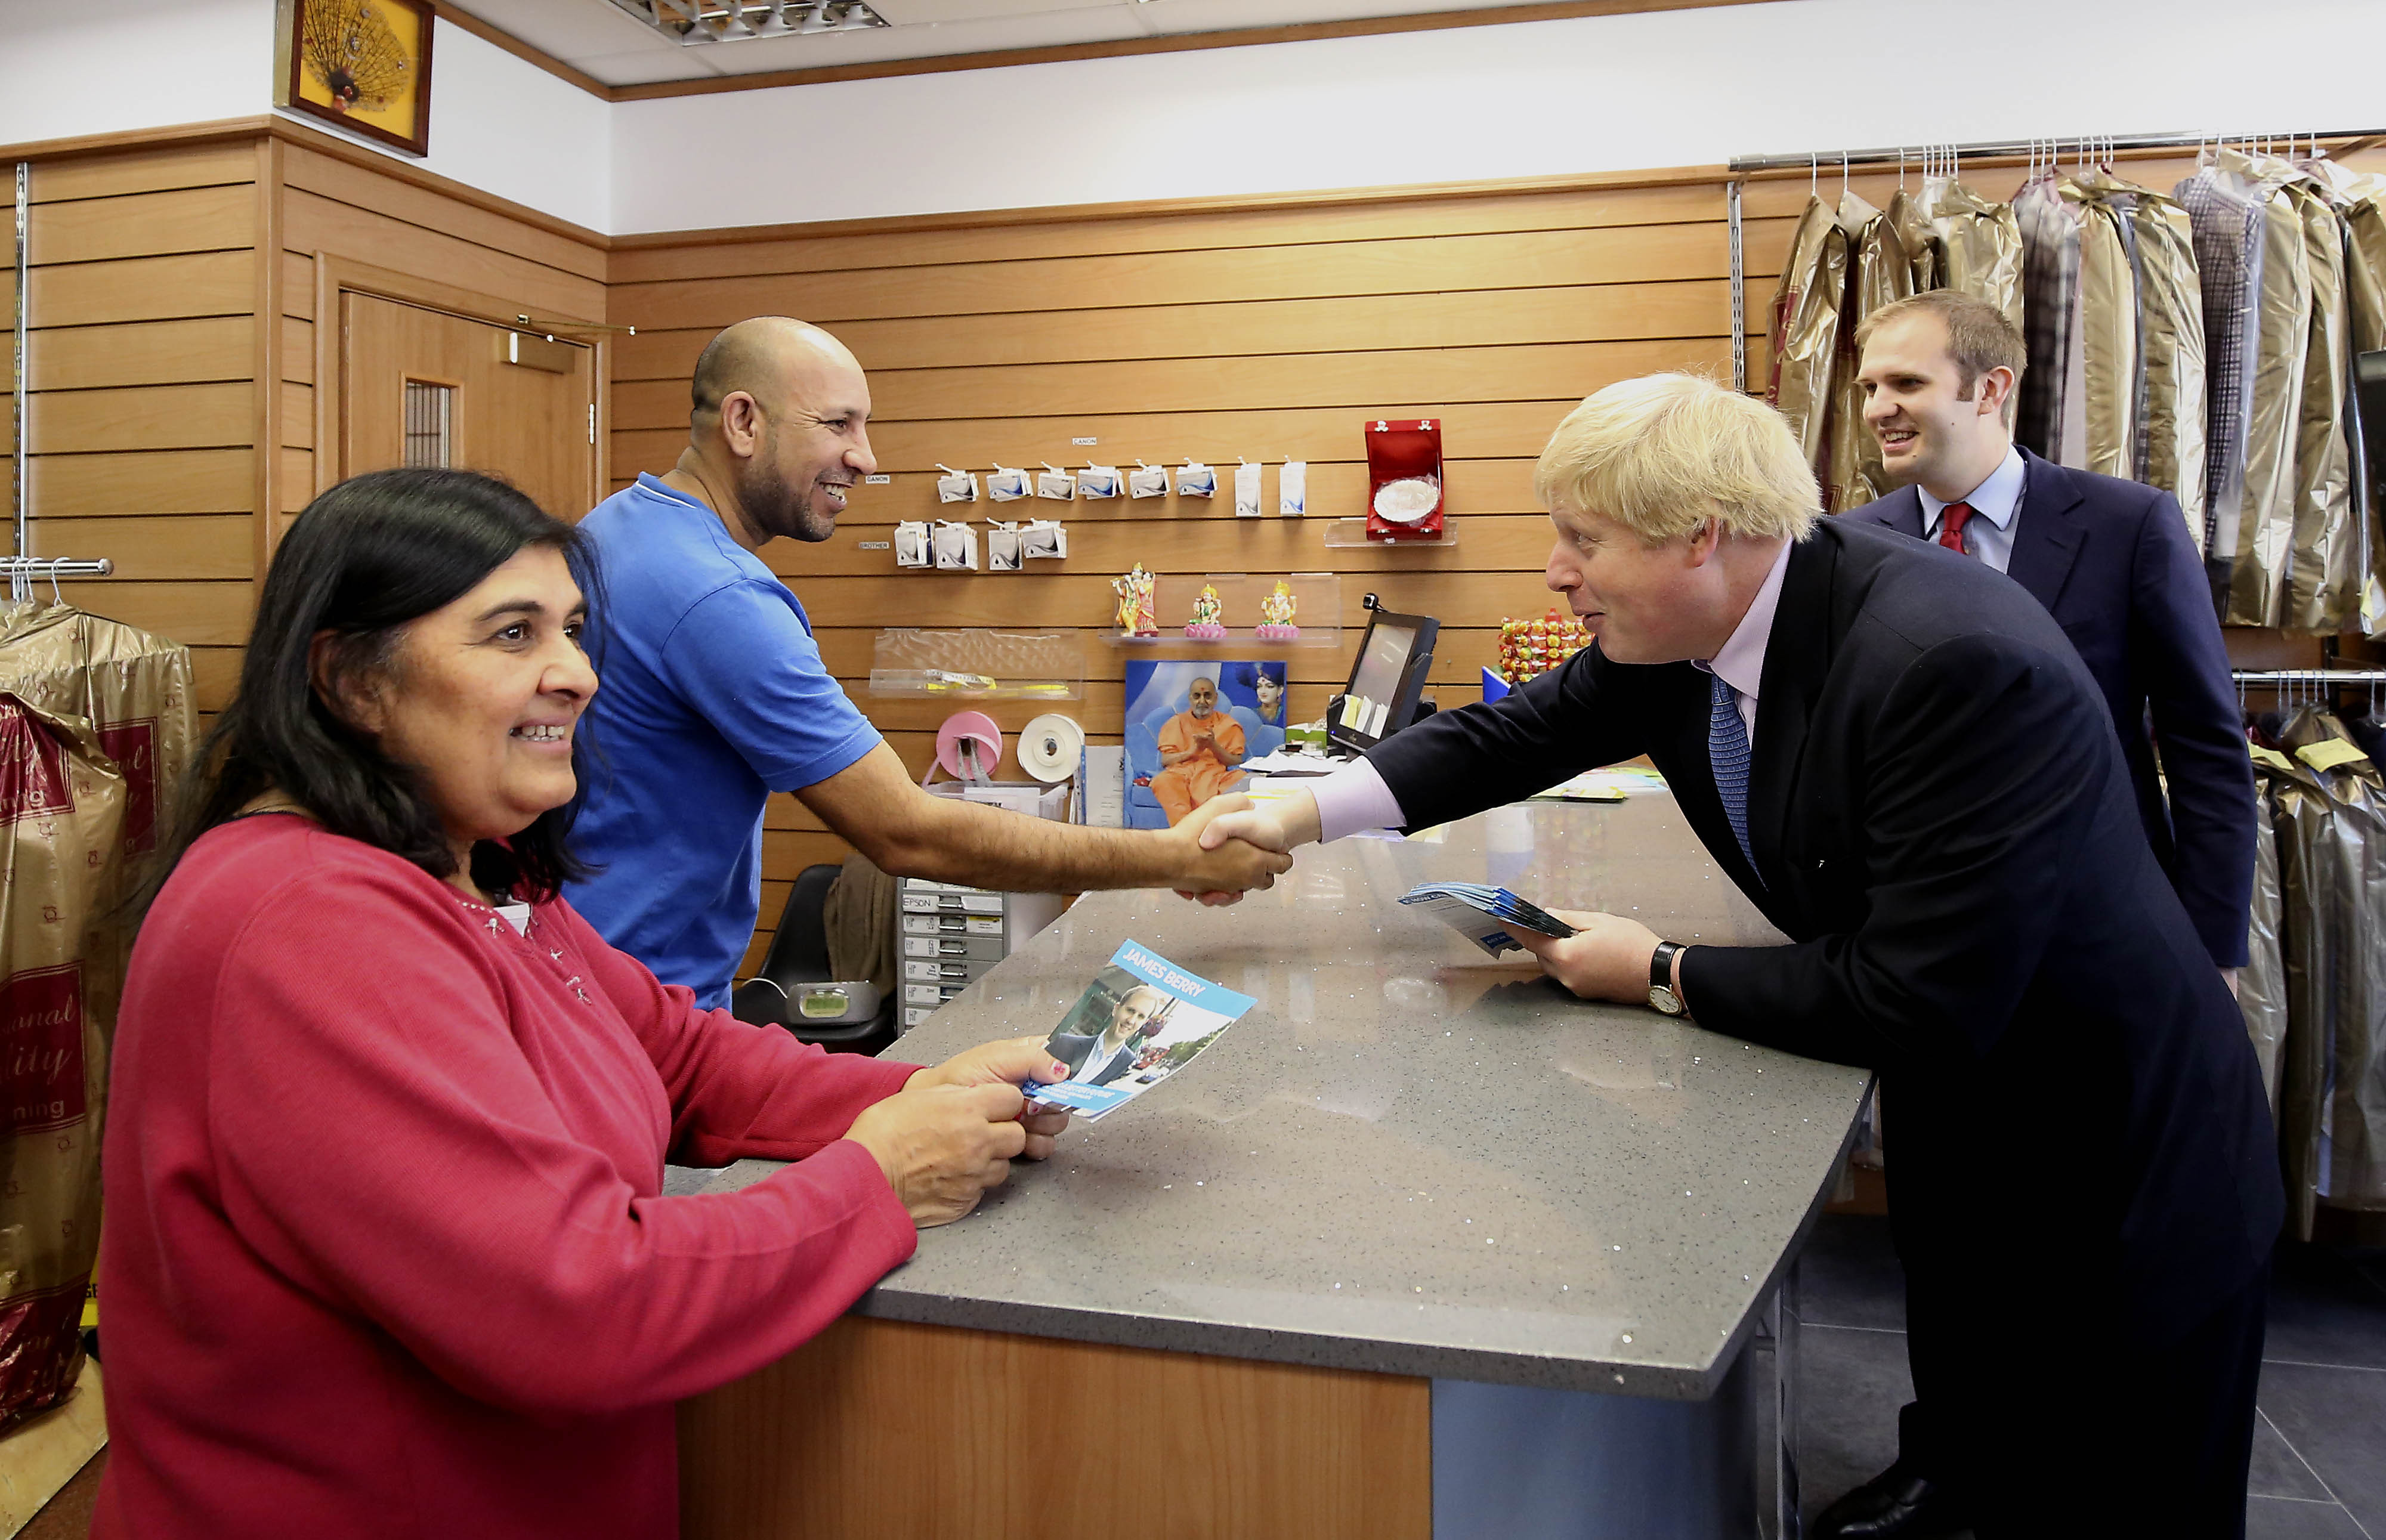 Mayor of London Boris Johnson with Conservative candidate for Kingston and Surbiton James Berry (right) talking to local shopkeepers while on the General Election campaign trail in New Malden in south-west London.